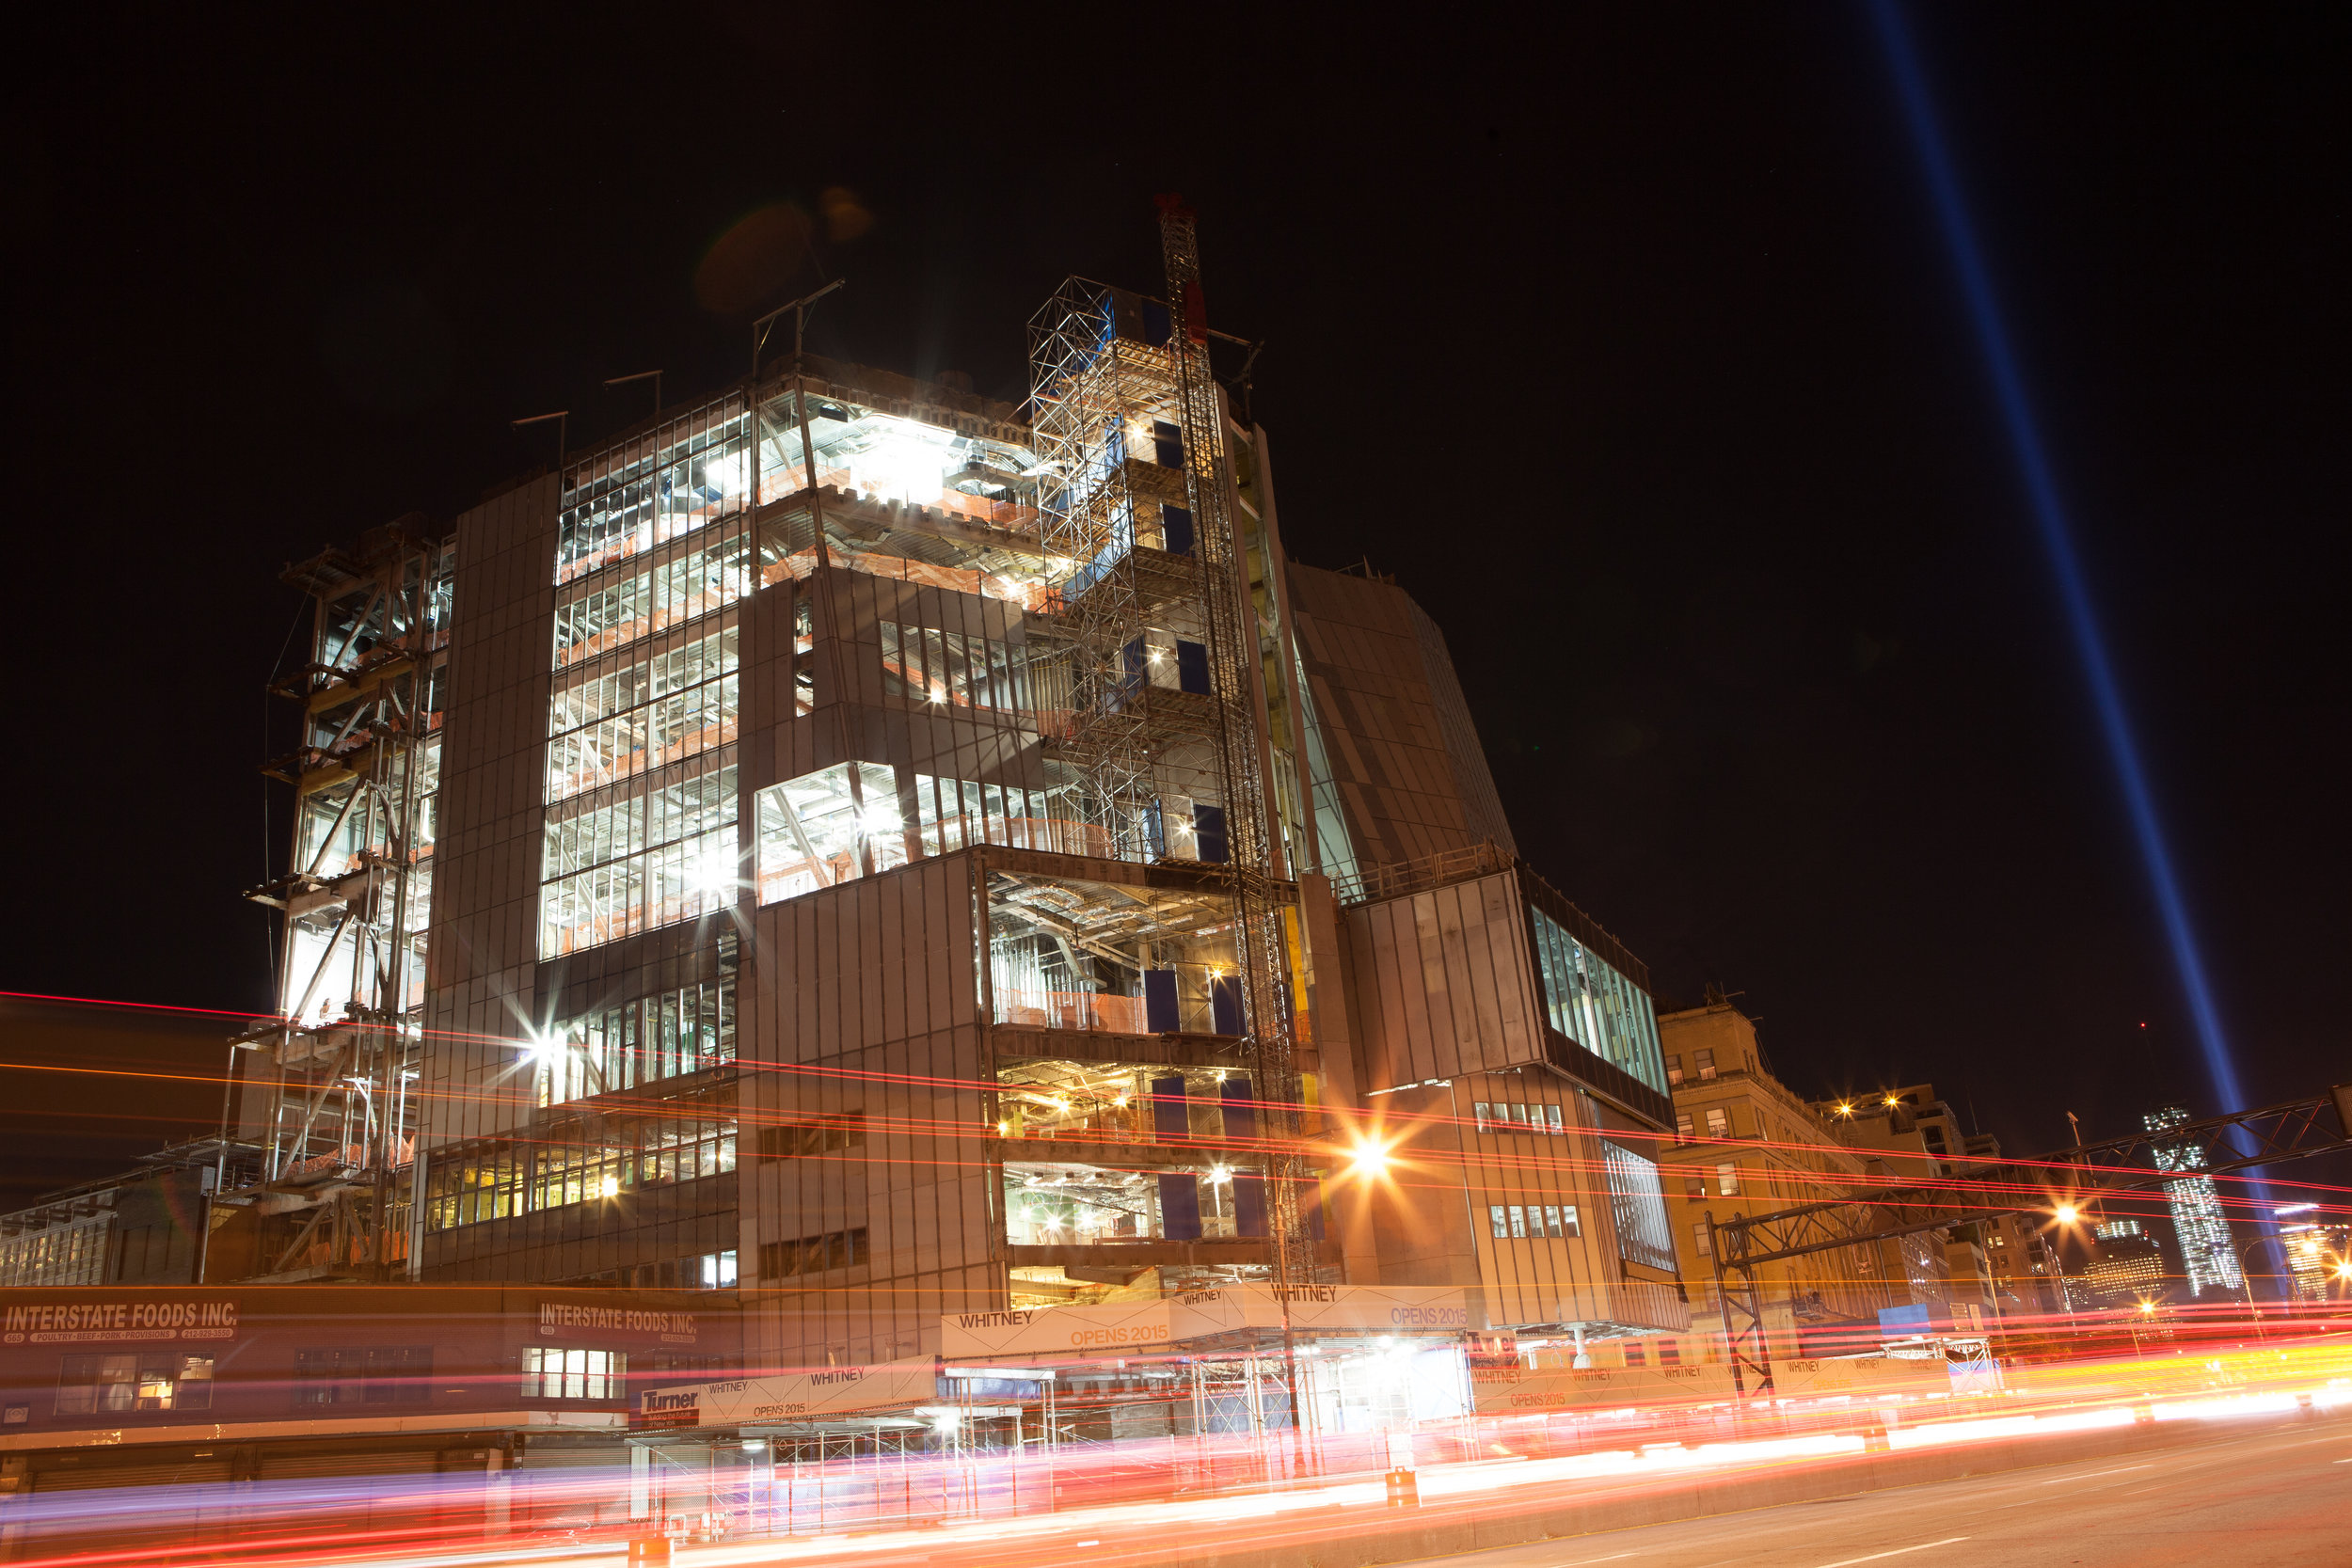 Construction of The Whitney